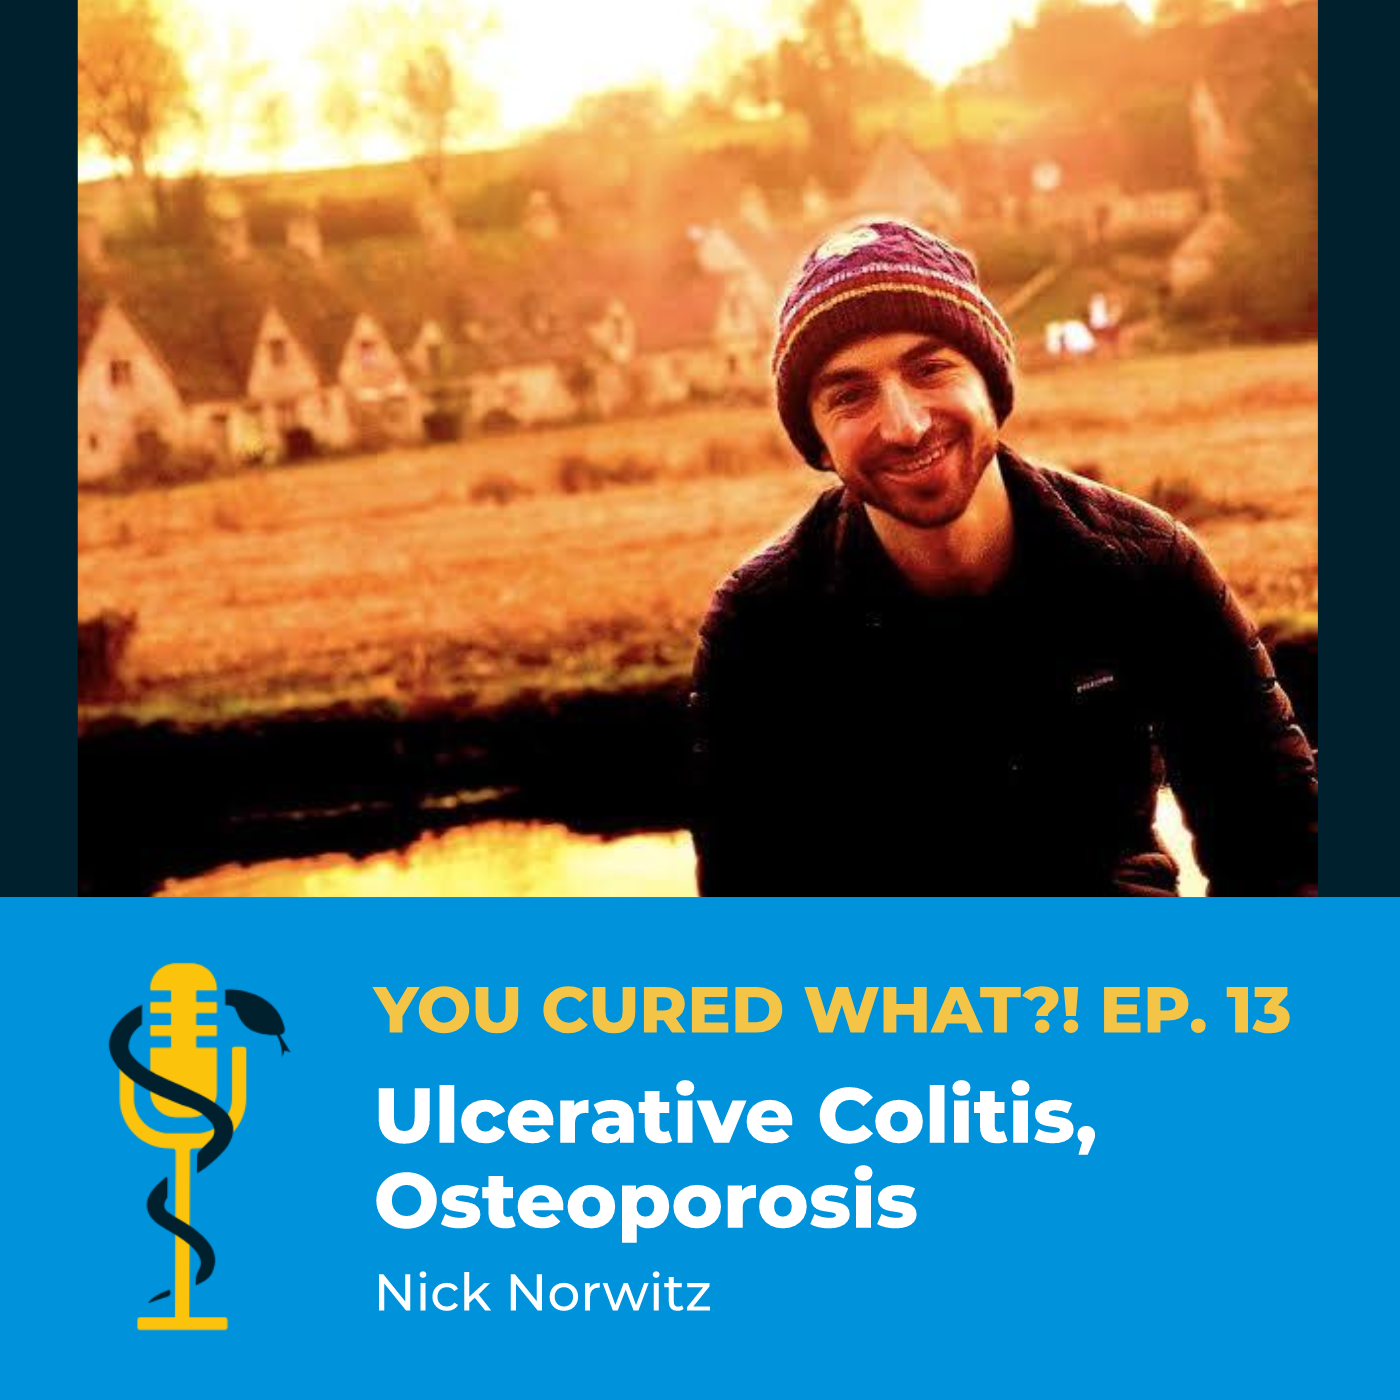 Ep.13: Ulcerative Colitis, Osteoporosis with Nick Norwitz